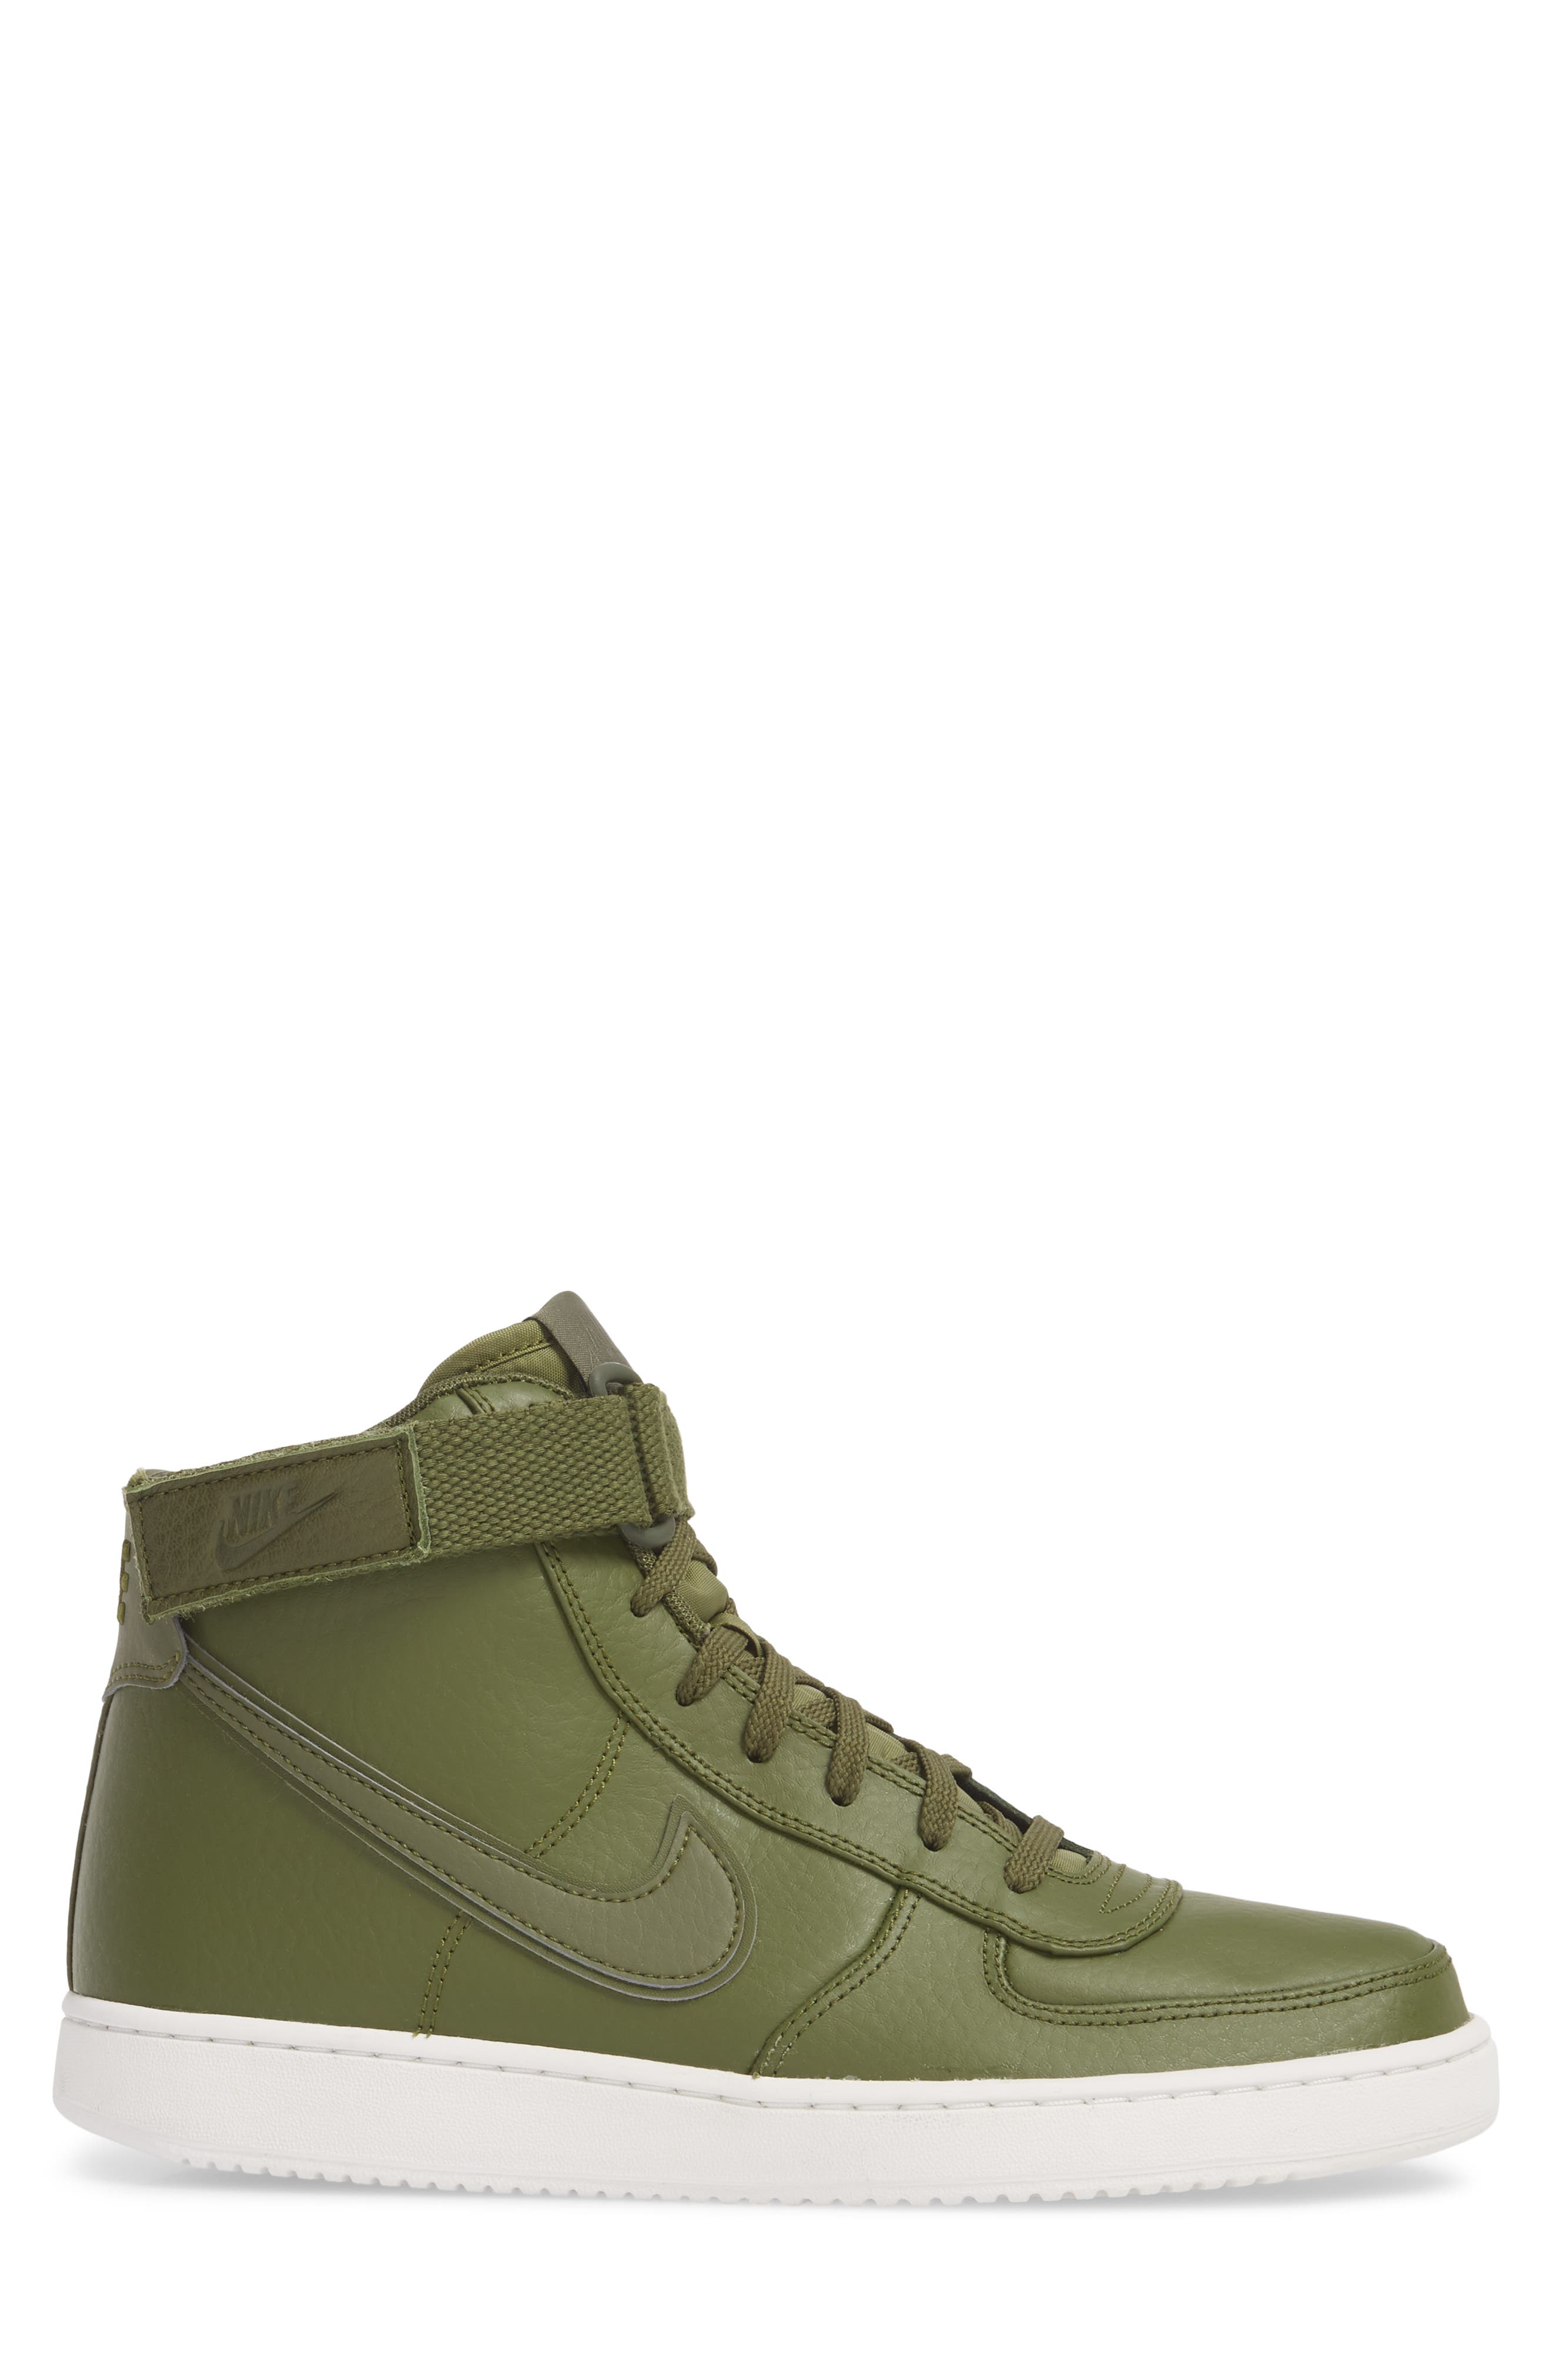 Vandal High Supreme Leather Sneaker,                             Alternate thumbnail 3, color,                             Legion Green/ Summit White